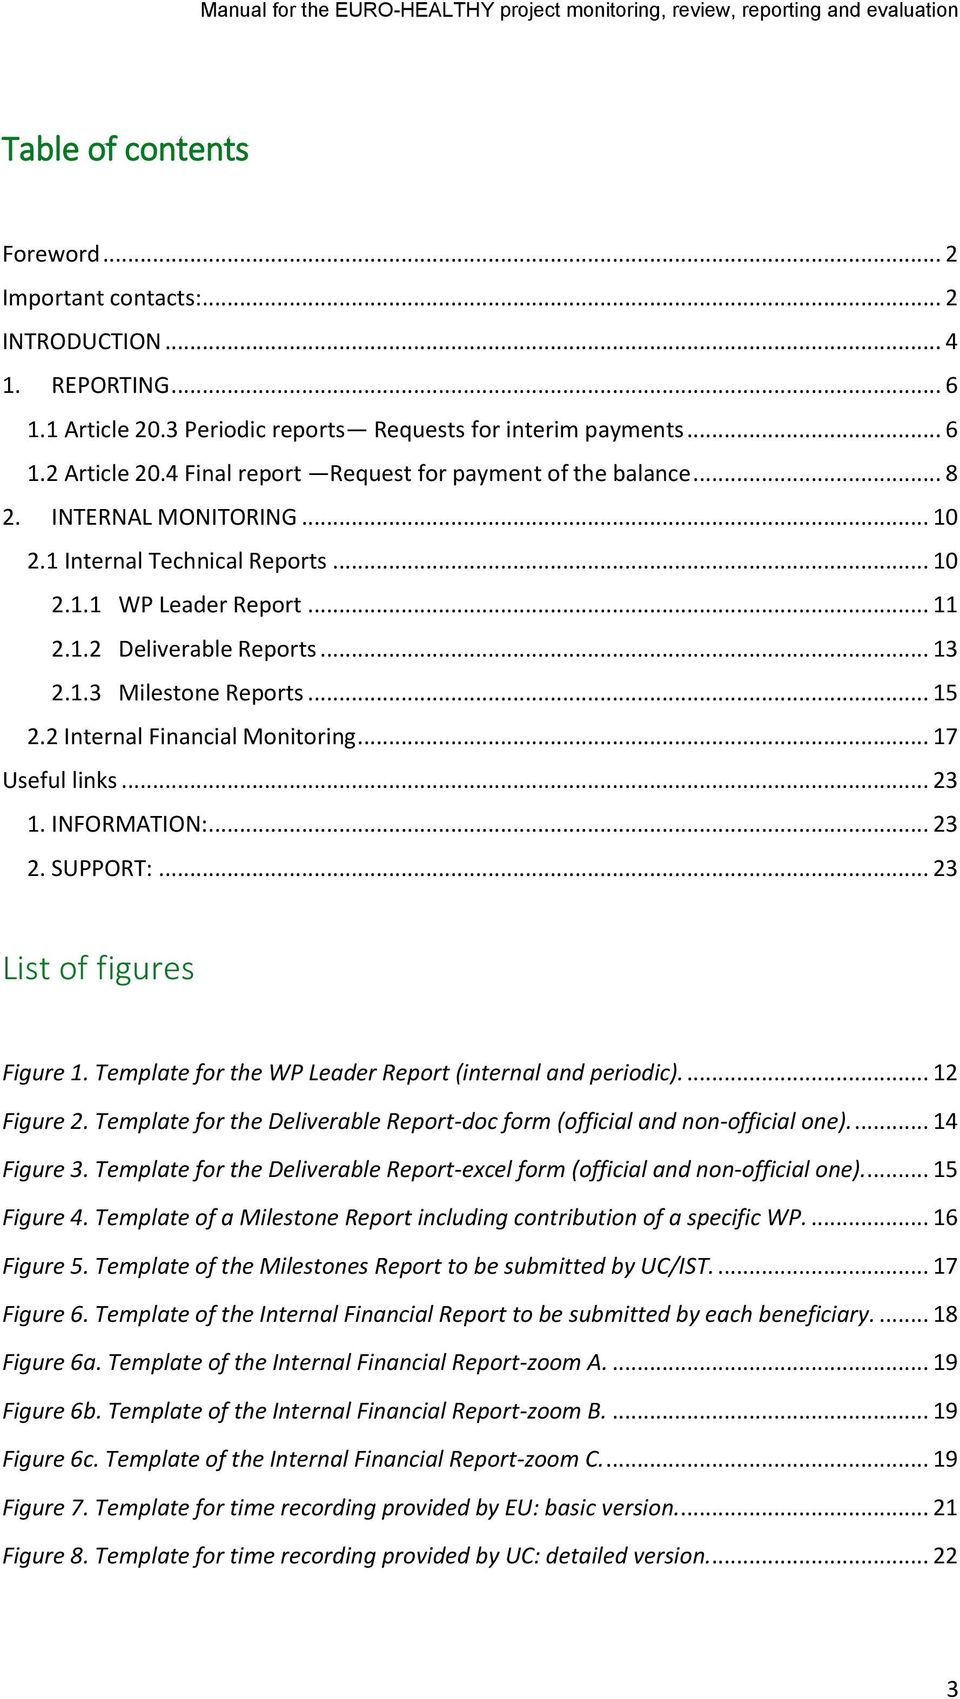 .. 15 2.2 Internal Financial Monitoring... 17 Useful links... 23 1. INFORMATION:... 23 2. SUPPORT:... 23 List of figures Figure 1. Template for the WP Leader Report (internal and periodic).